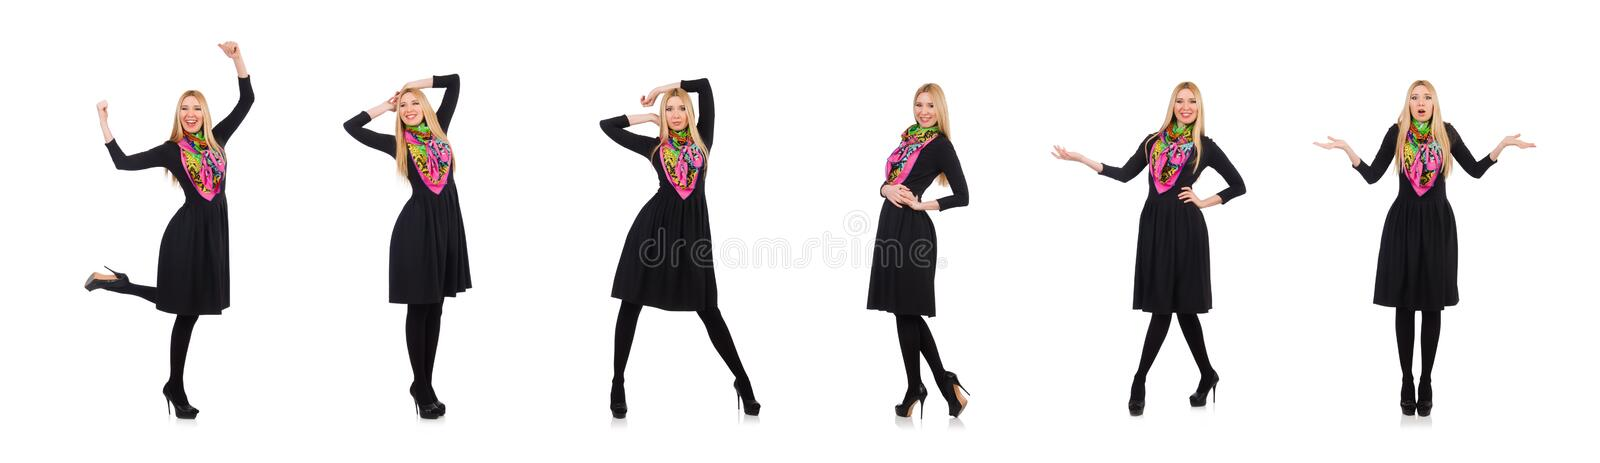 Woman in fashion clothing concept royalty free stock image